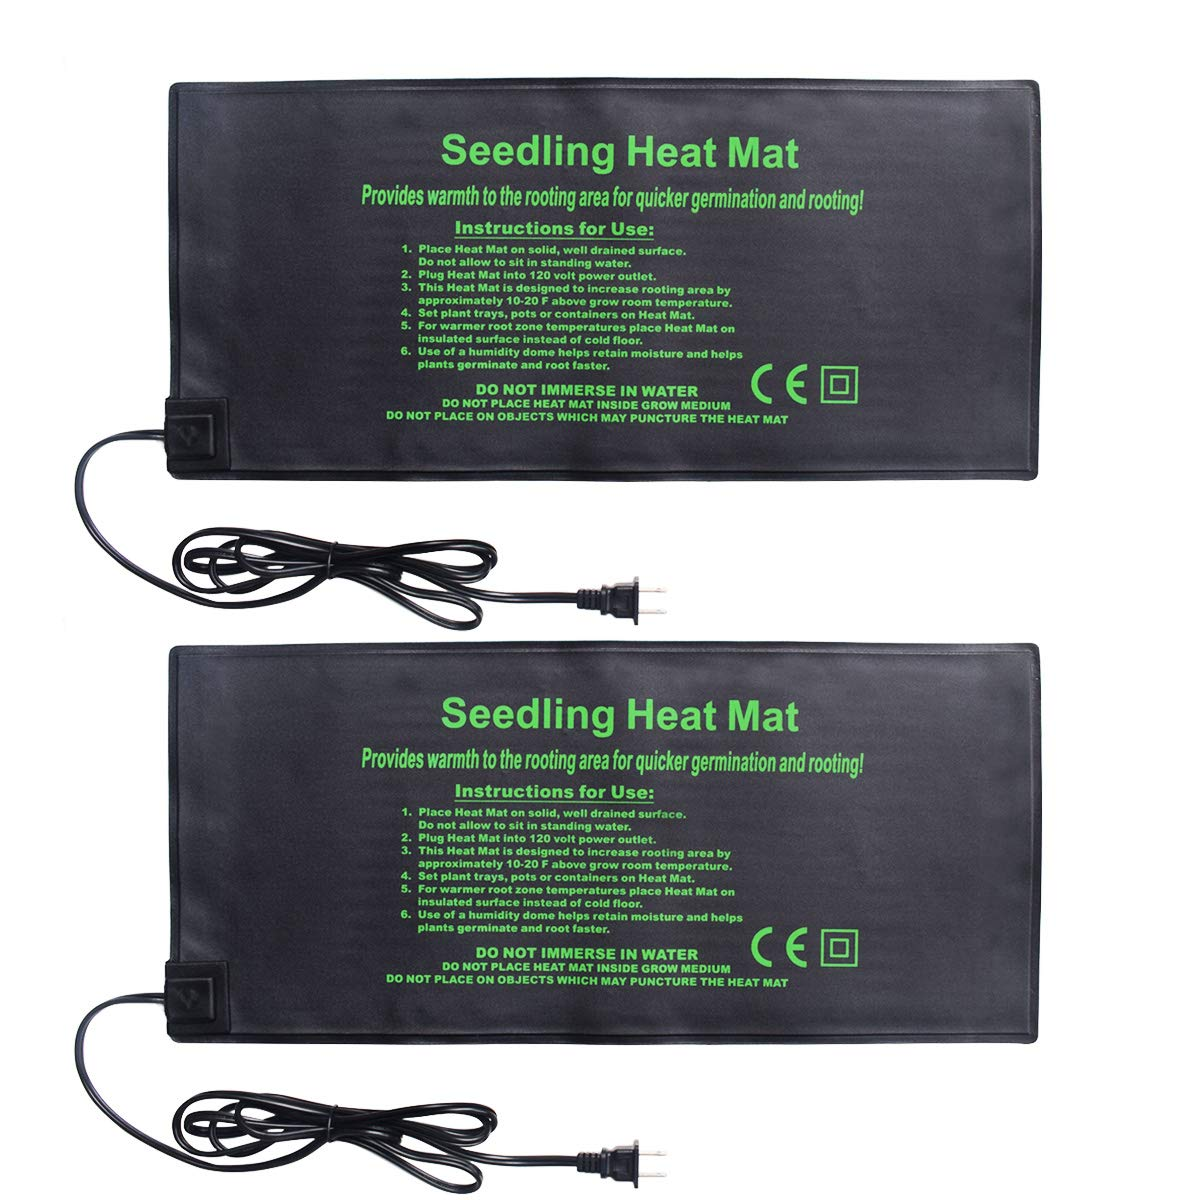 BoHoFarm Seedling Heat Mat 2-Pack Heating Mat Hydroponic Heating Pad Waterproof for Seed Germination Cloning and Plant Propagation (S)